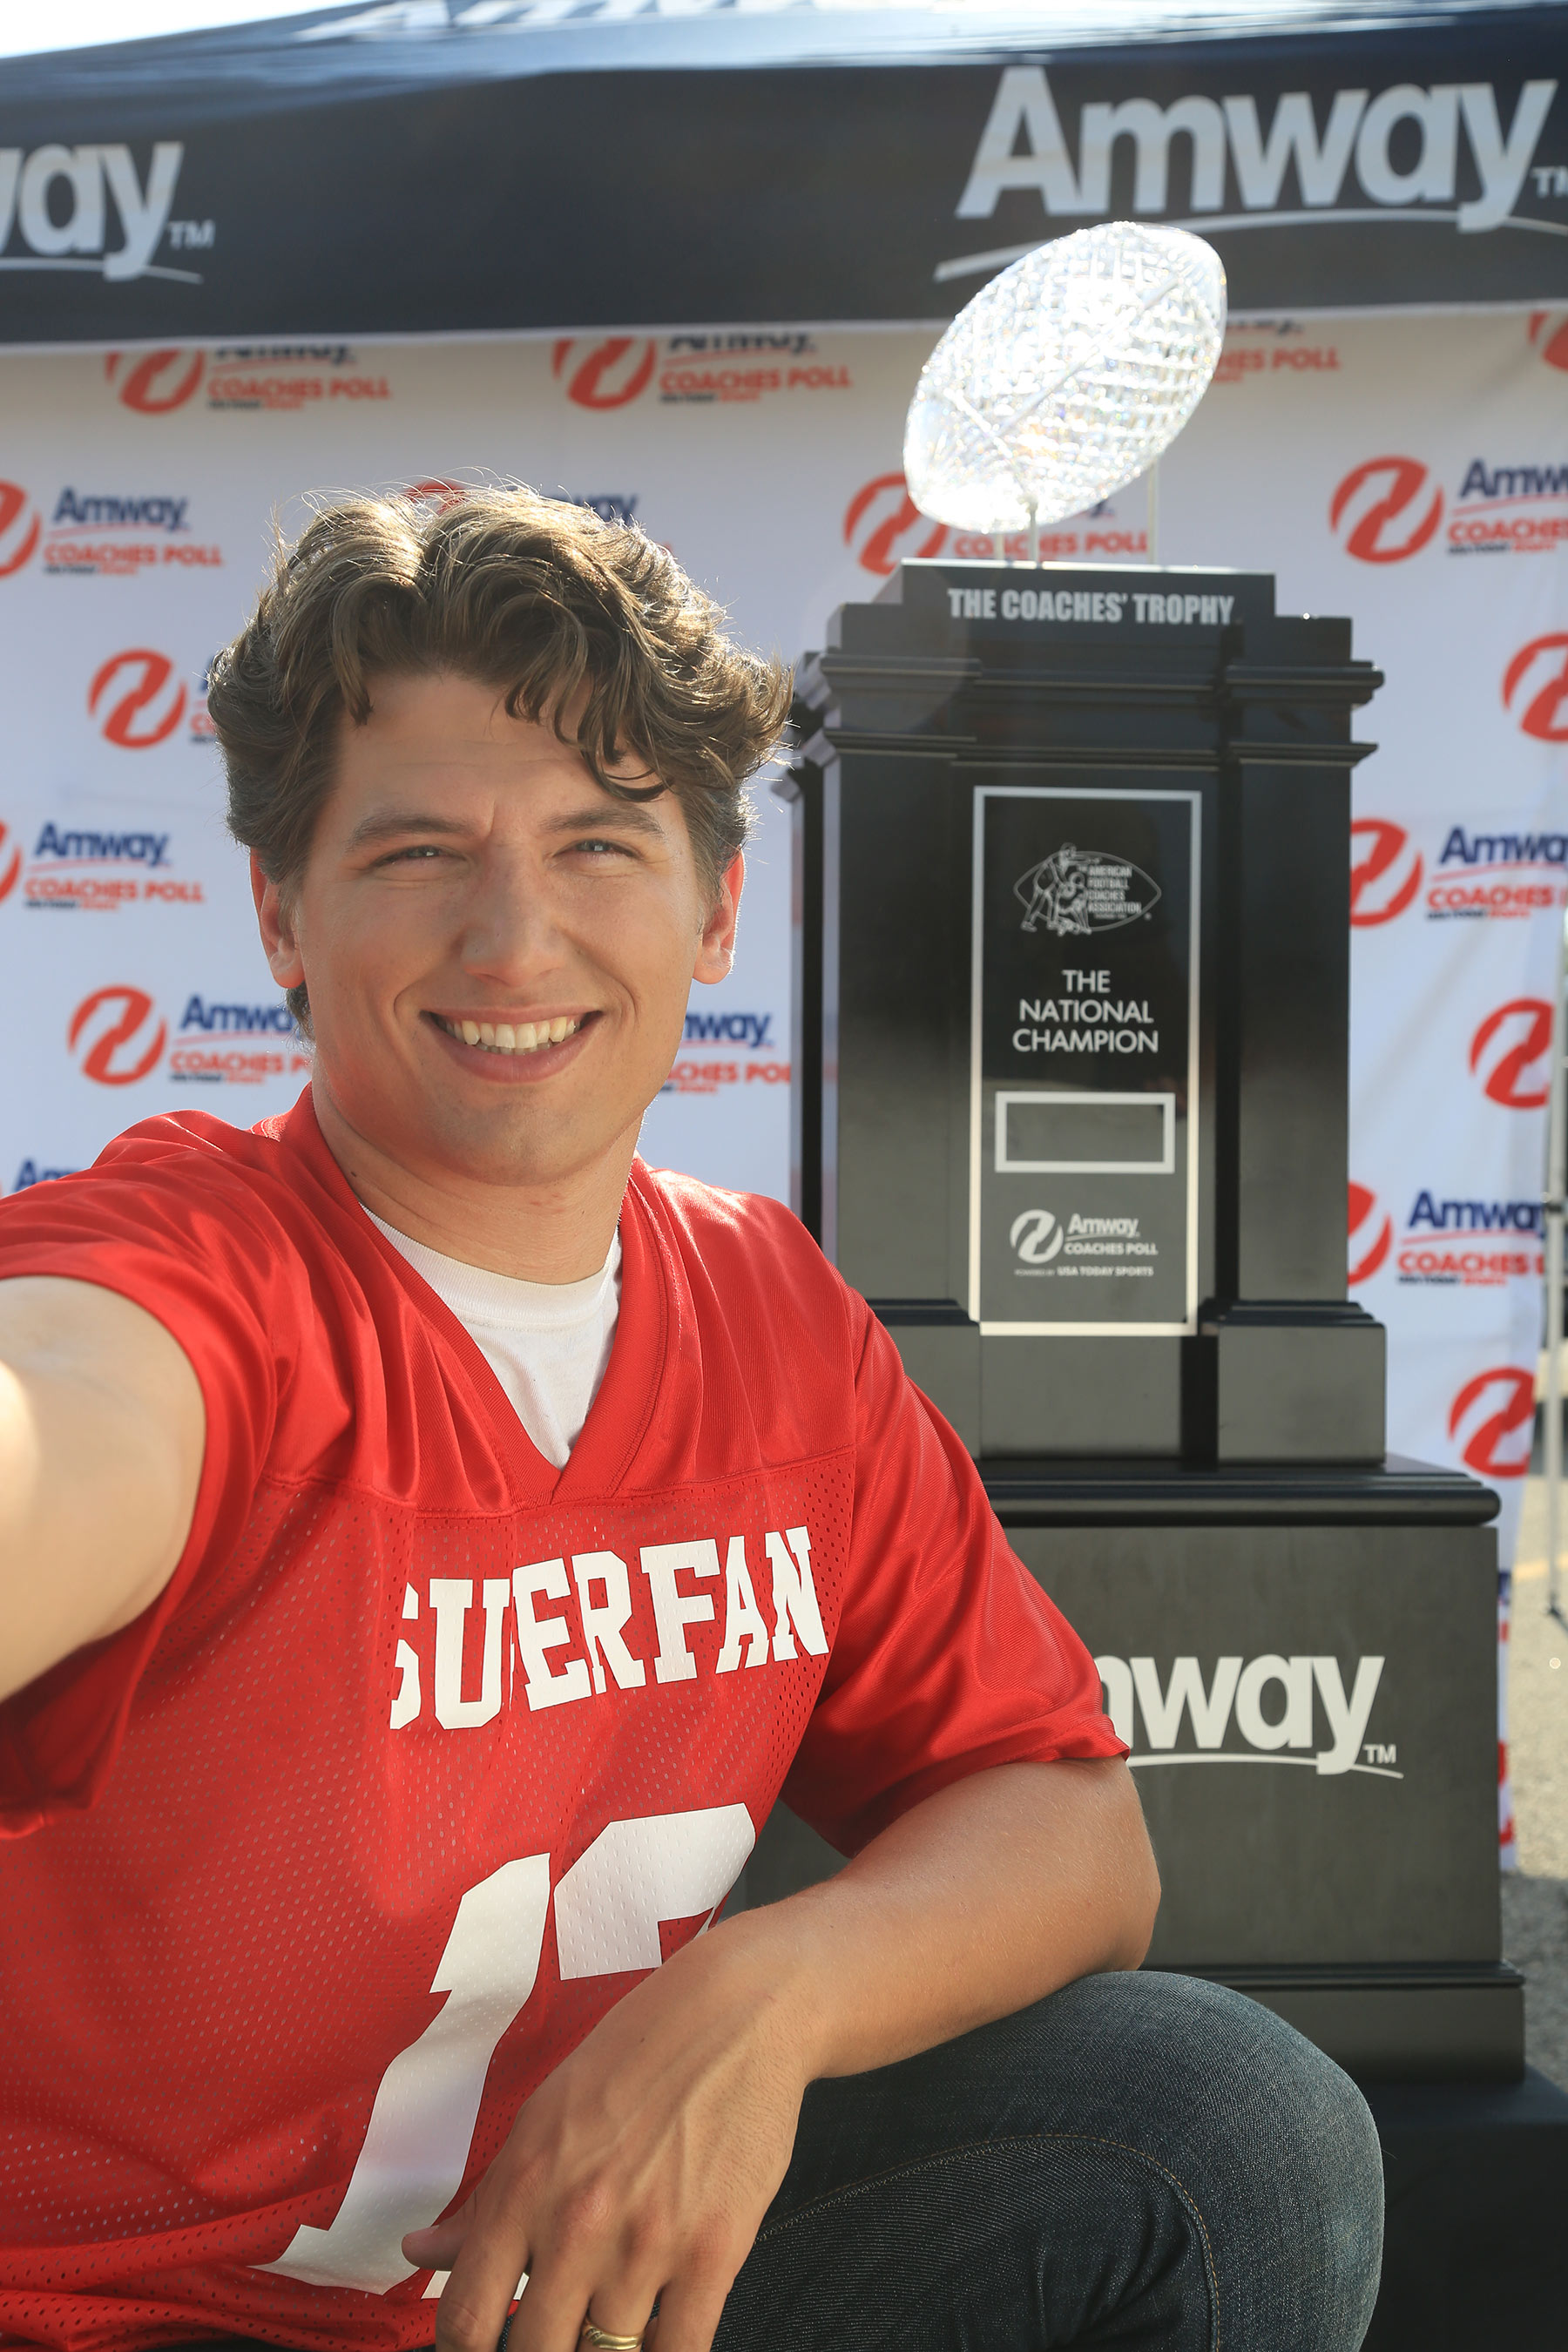 http://www.multivu.com/players/English/7239456-amway-college-football-super-fan-selfie-sweepstakes-afca-coaches-trophy/gallery/image/1336911e-47b5-466d-82e3-584161cf2101.HR.jpg